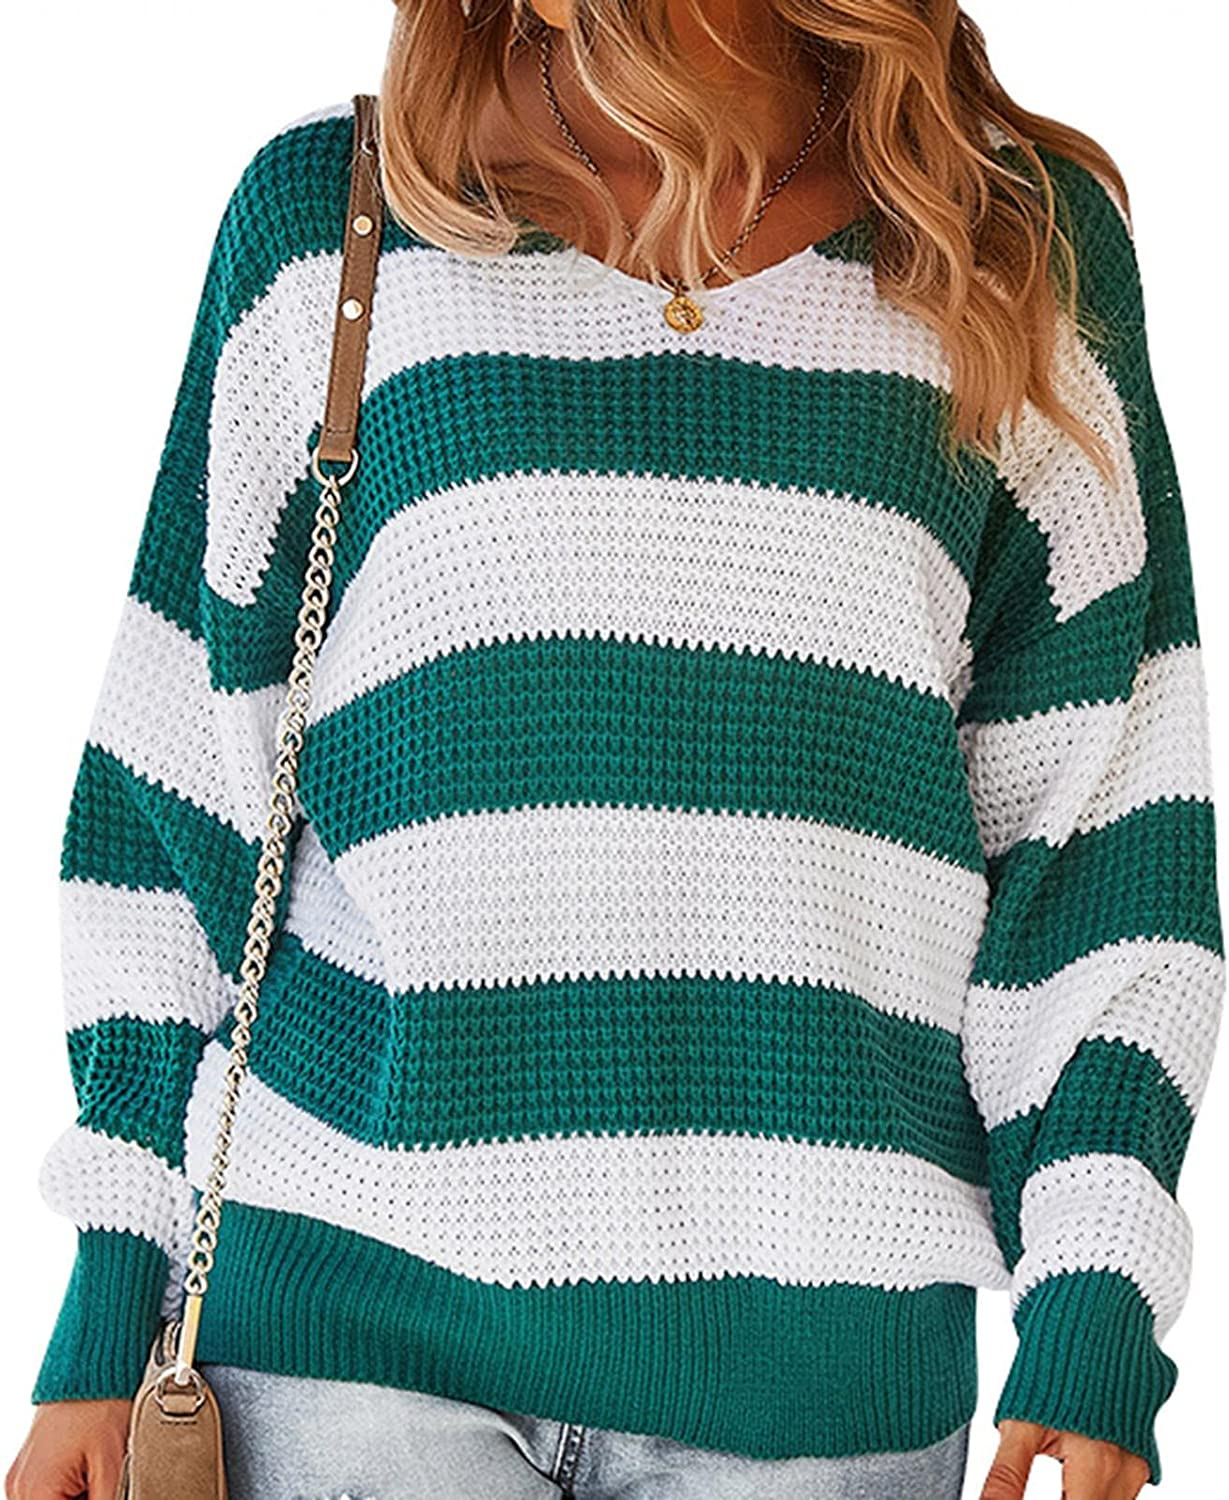 Women's Fall Long Sleeve Stripe Color Block Sweaters Casual Loose Fit V Neck Knitted Pullover Sweater Jumper Tops